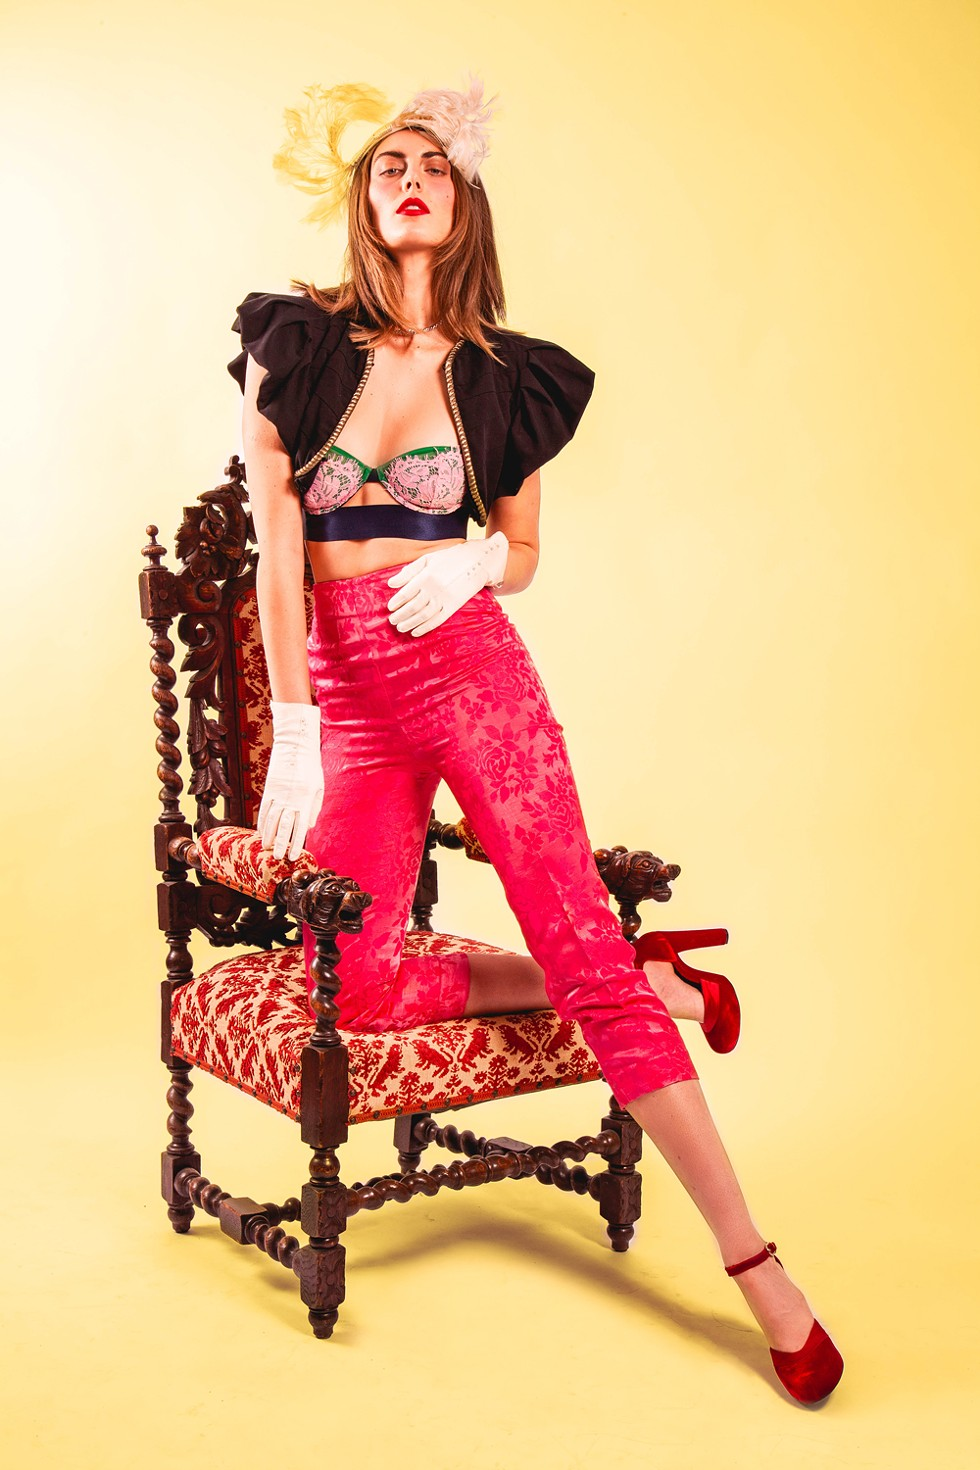 You really got a cuckhold on me: Pernille strapless bra, $81, Super Natural Lingerie, 248-792-7433, supernaturallingerie.com; rose dress pants, $38, Flamingo Vintage, 214-538-5985; cropped over jacket, $52, Shop Minnie Lou, @shopminnielou, 1418 Michigan Ave., Detroit; White leather gloves, $25, white feather hat, $30, The Velvet Tower, thevelvettower.com; crystal choker, $45, Grandma's Gold, - etsy.com/shop/grandmasgoldjewelry; shoes, stylist's own. - MILES MARIE OF NOMADIC MADAM